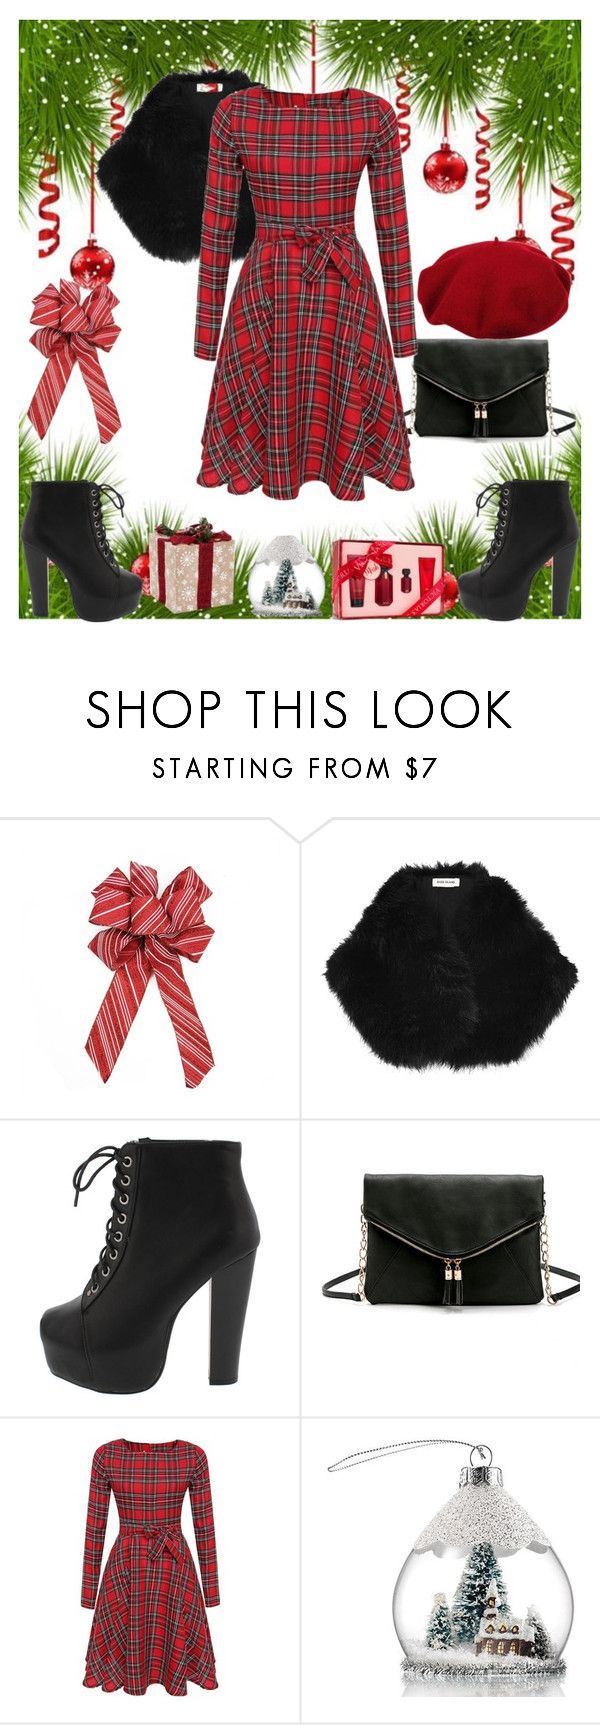 """""""Untitled #1041"""" by misaflowers ❤ liked on Polyvore featuring River Island, Laulhere, Avon and Victoria's Secret"""